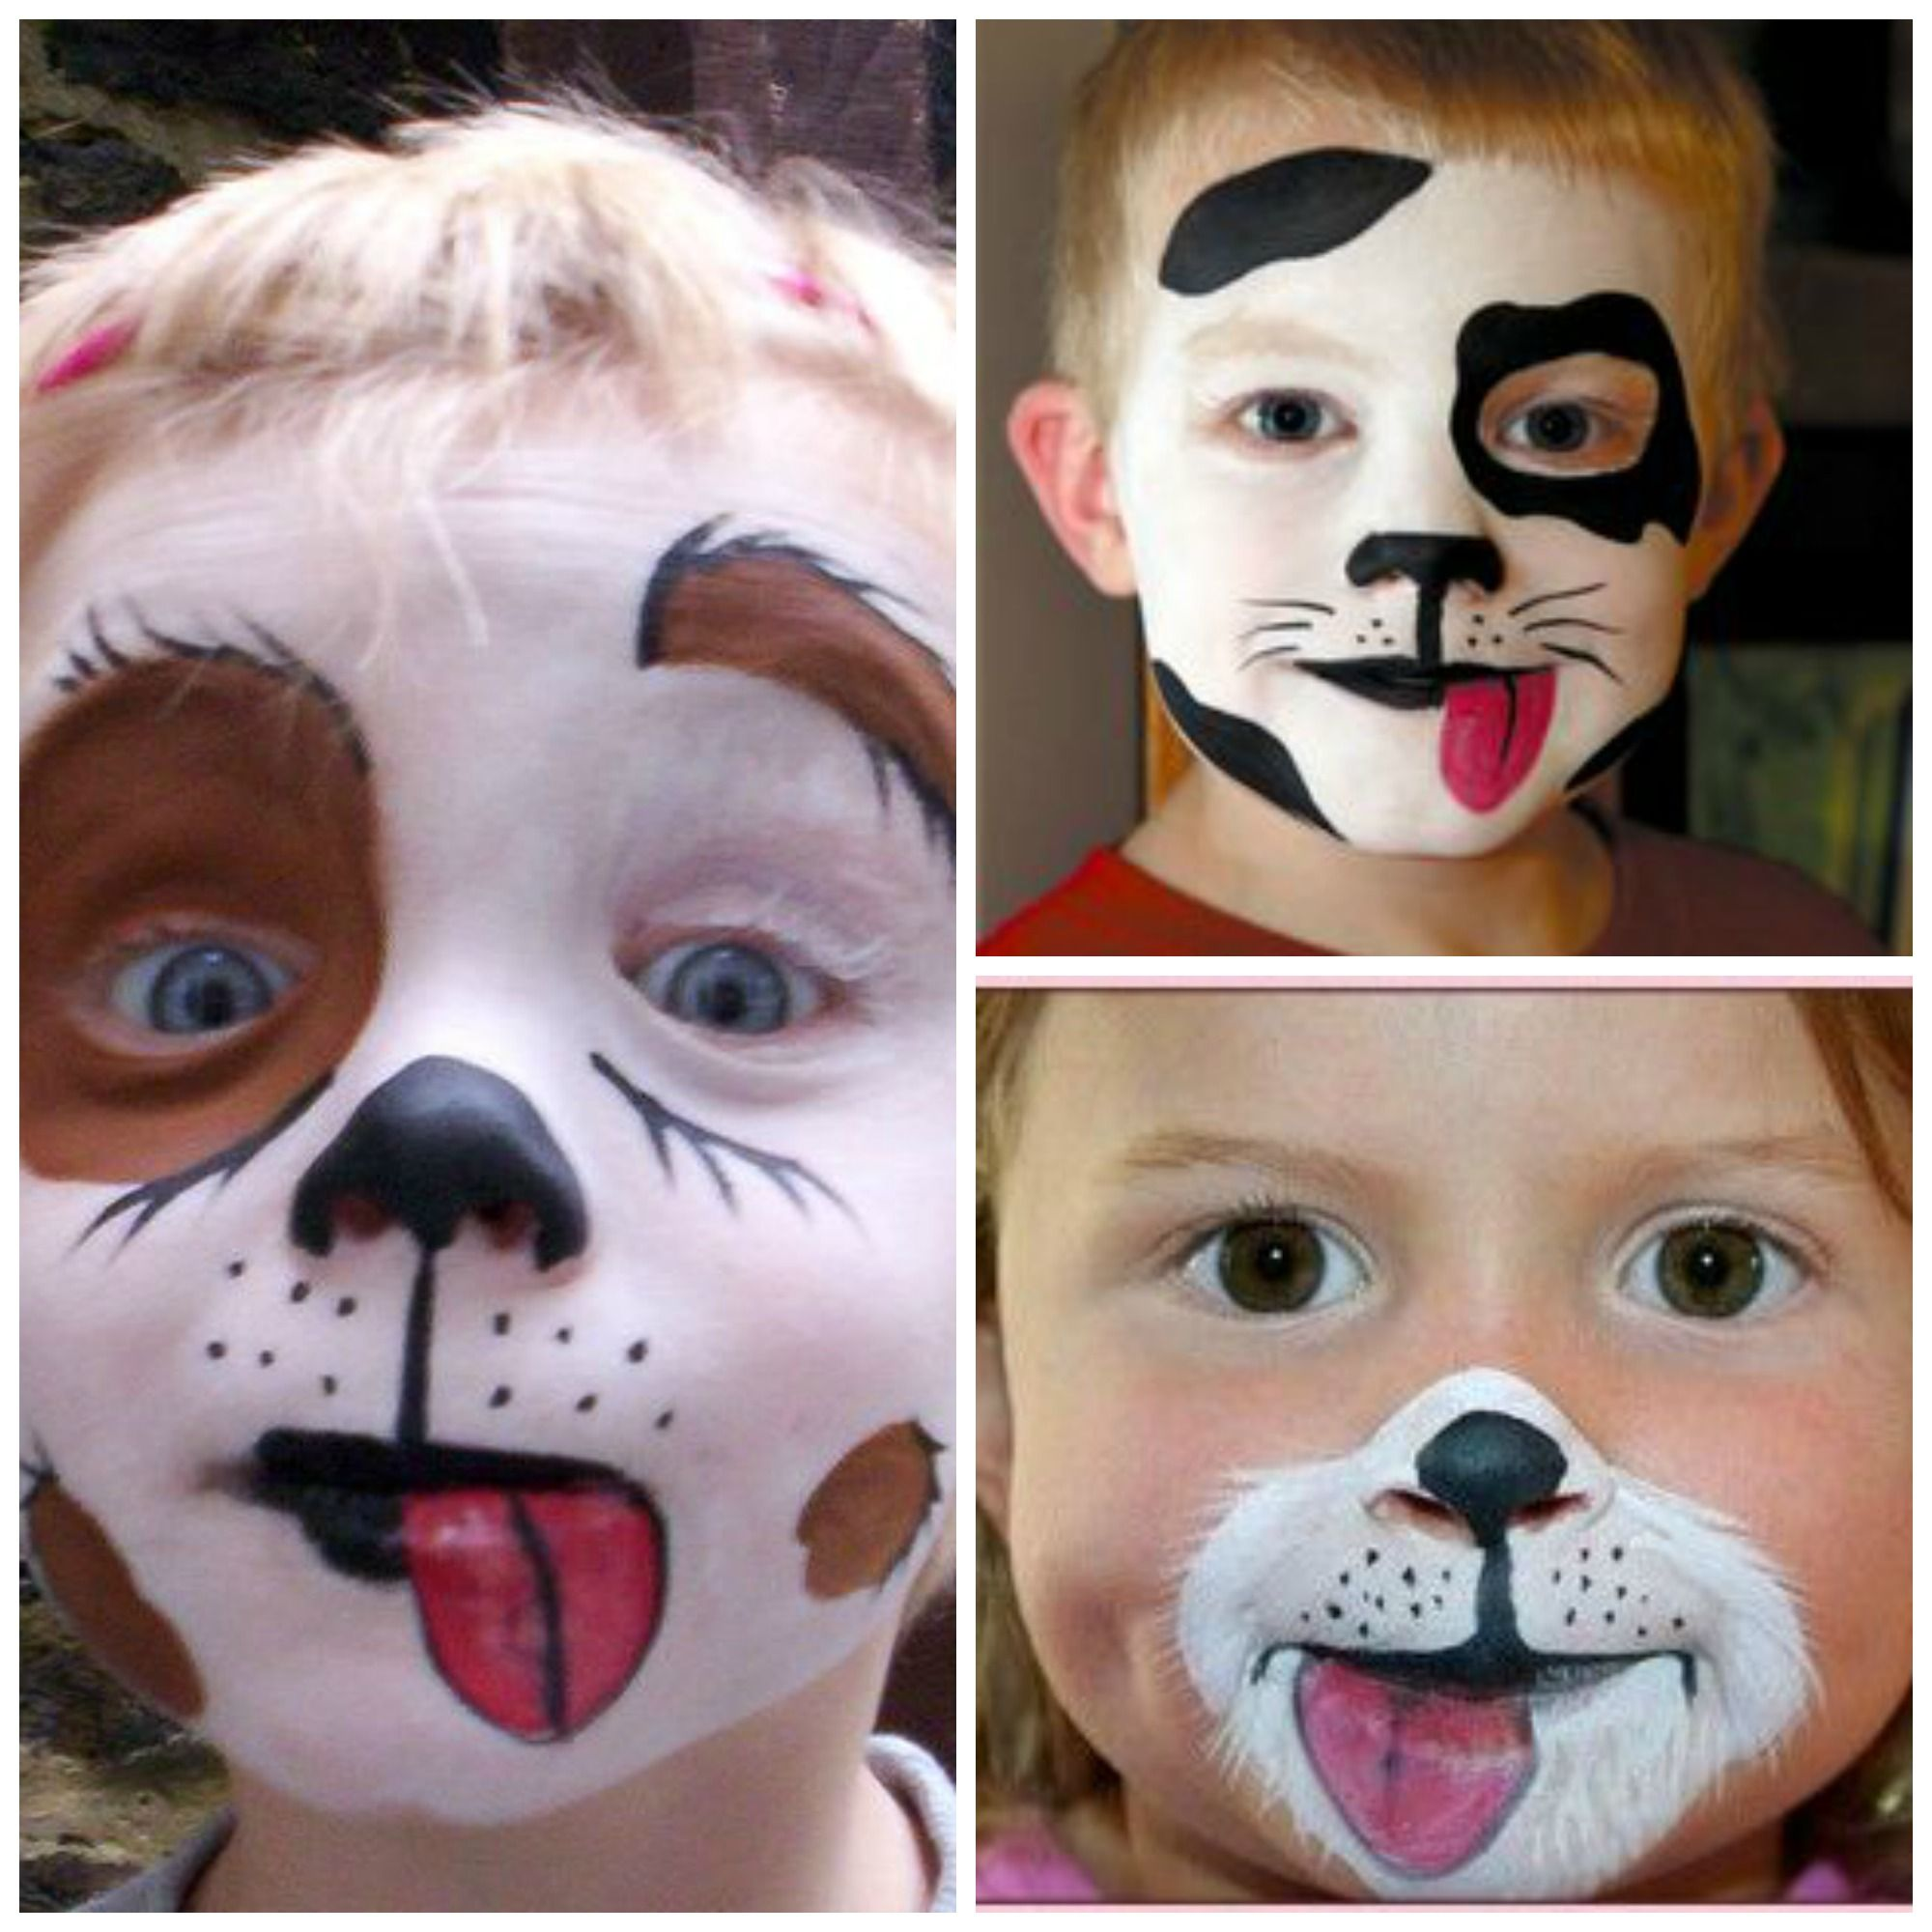 Emejing Halloween Kids Makeup Ideas Images - harrop.us - harrop.us